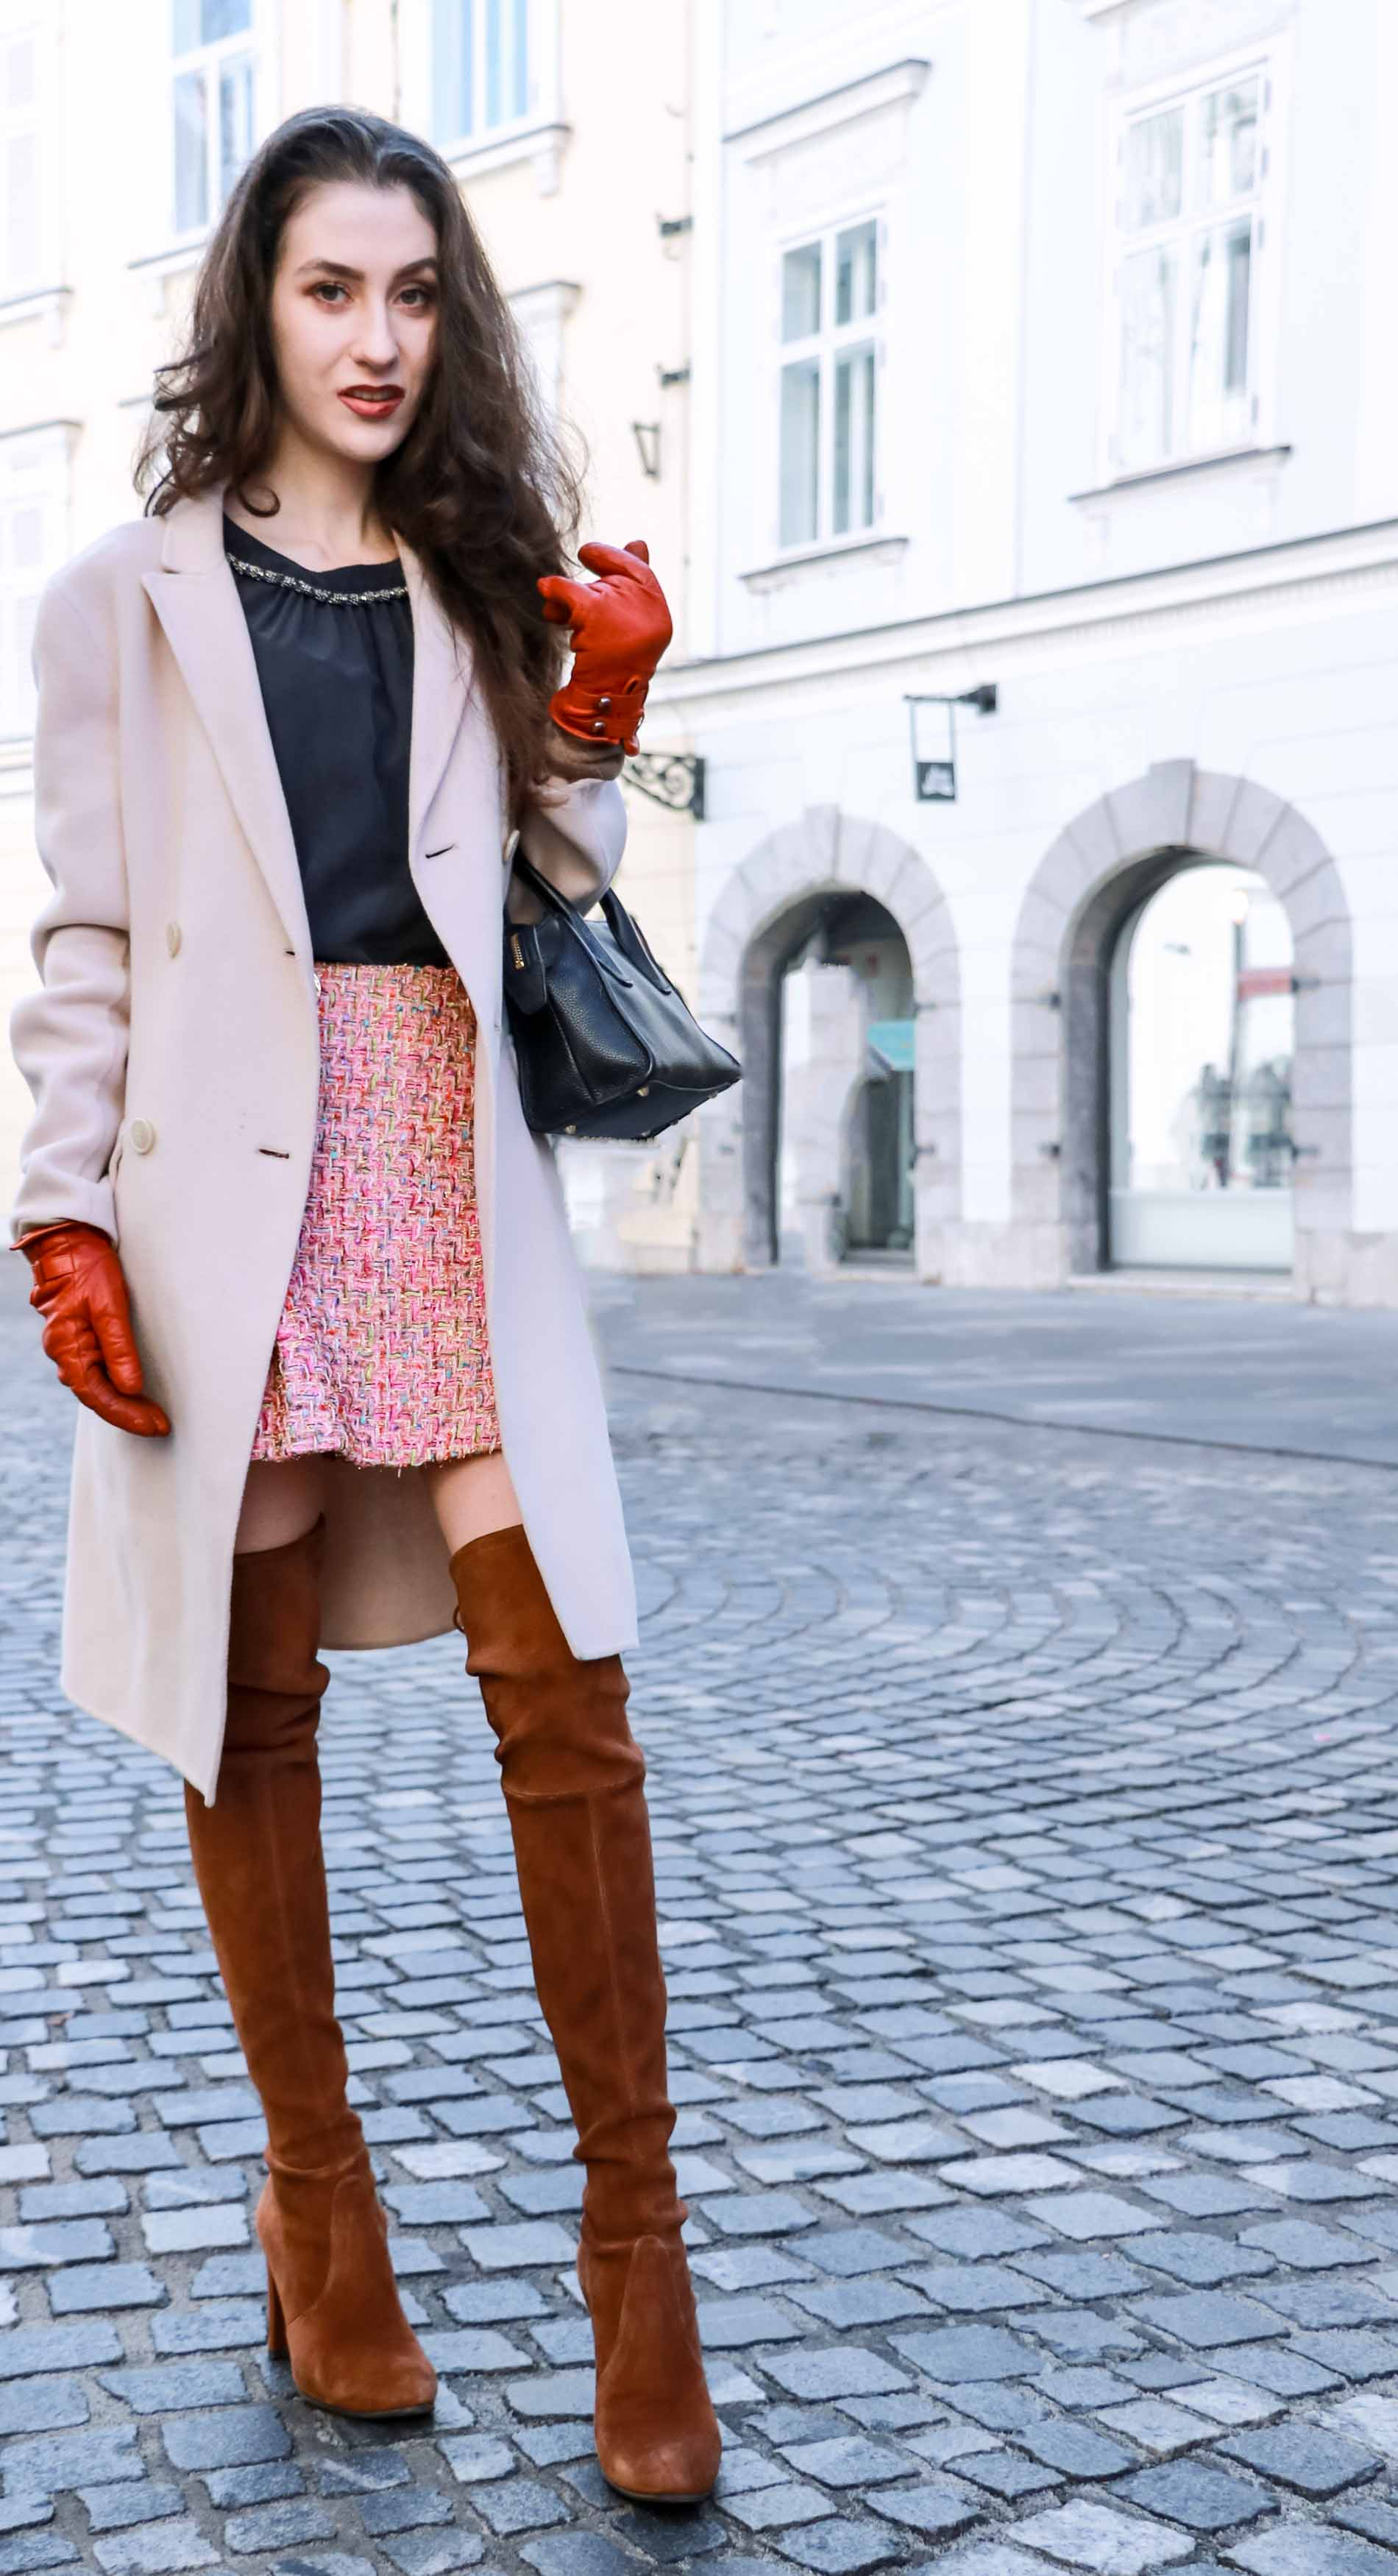 Fashion Blogger Veronika Lipar of Brunette from Wall Street wearing Storets pink tweed mini skirt, double breasted ivory coat from Weekend Maxmara, black silk blouse from Juicy couture, small black top handle bag, Stuart Weitzman brown OTK boots this winter